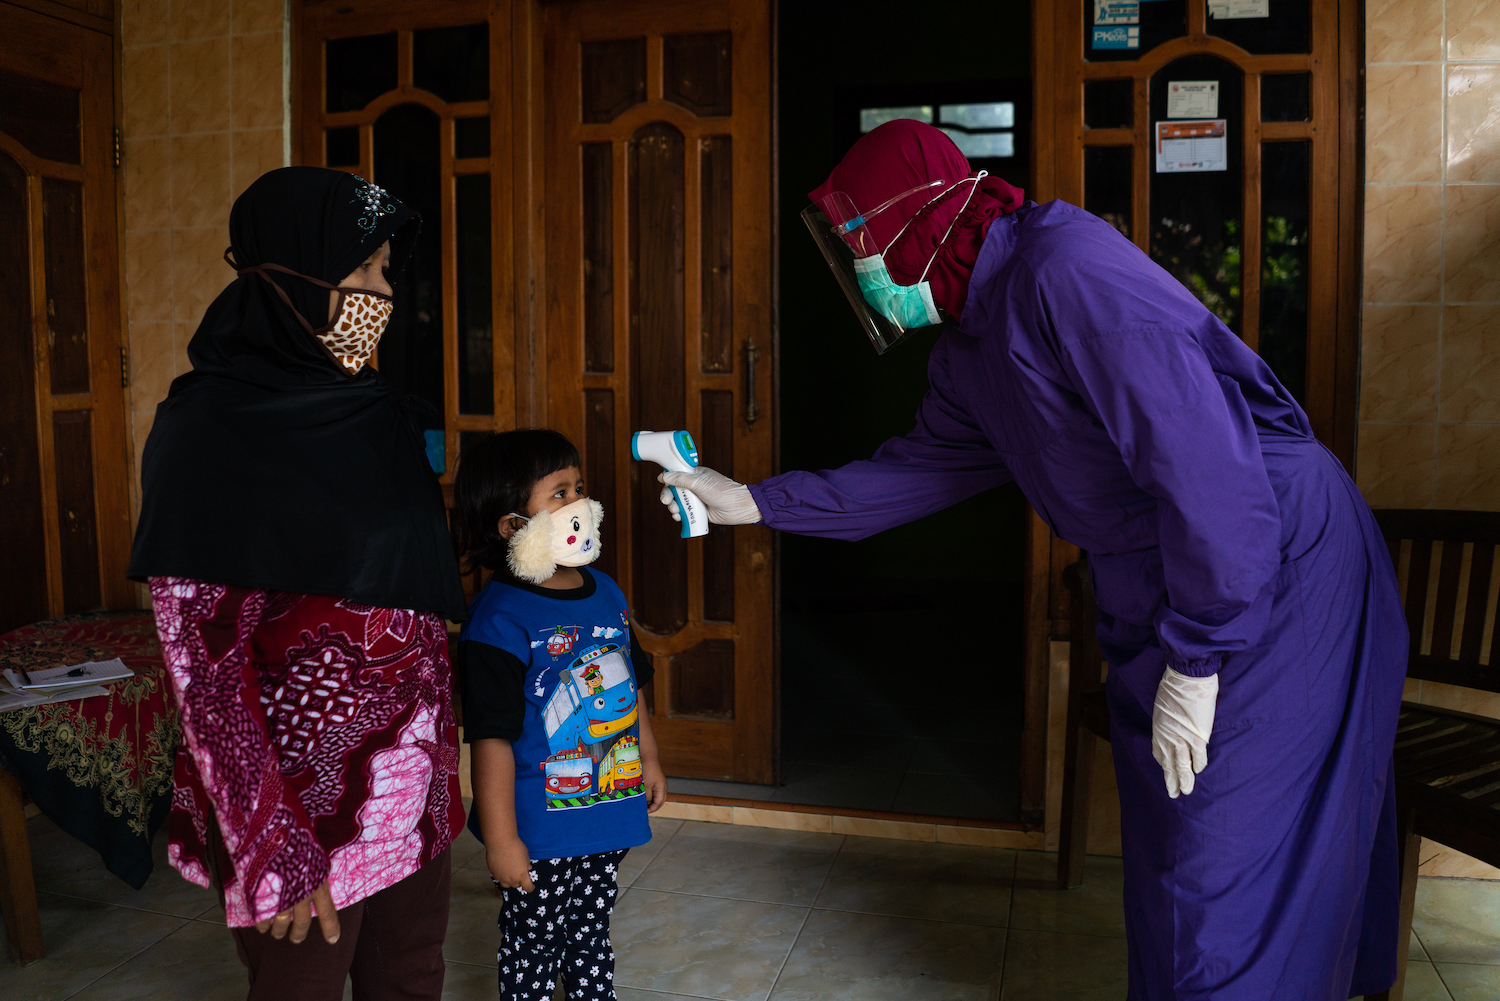 A health worker carries out a temperature check on a child